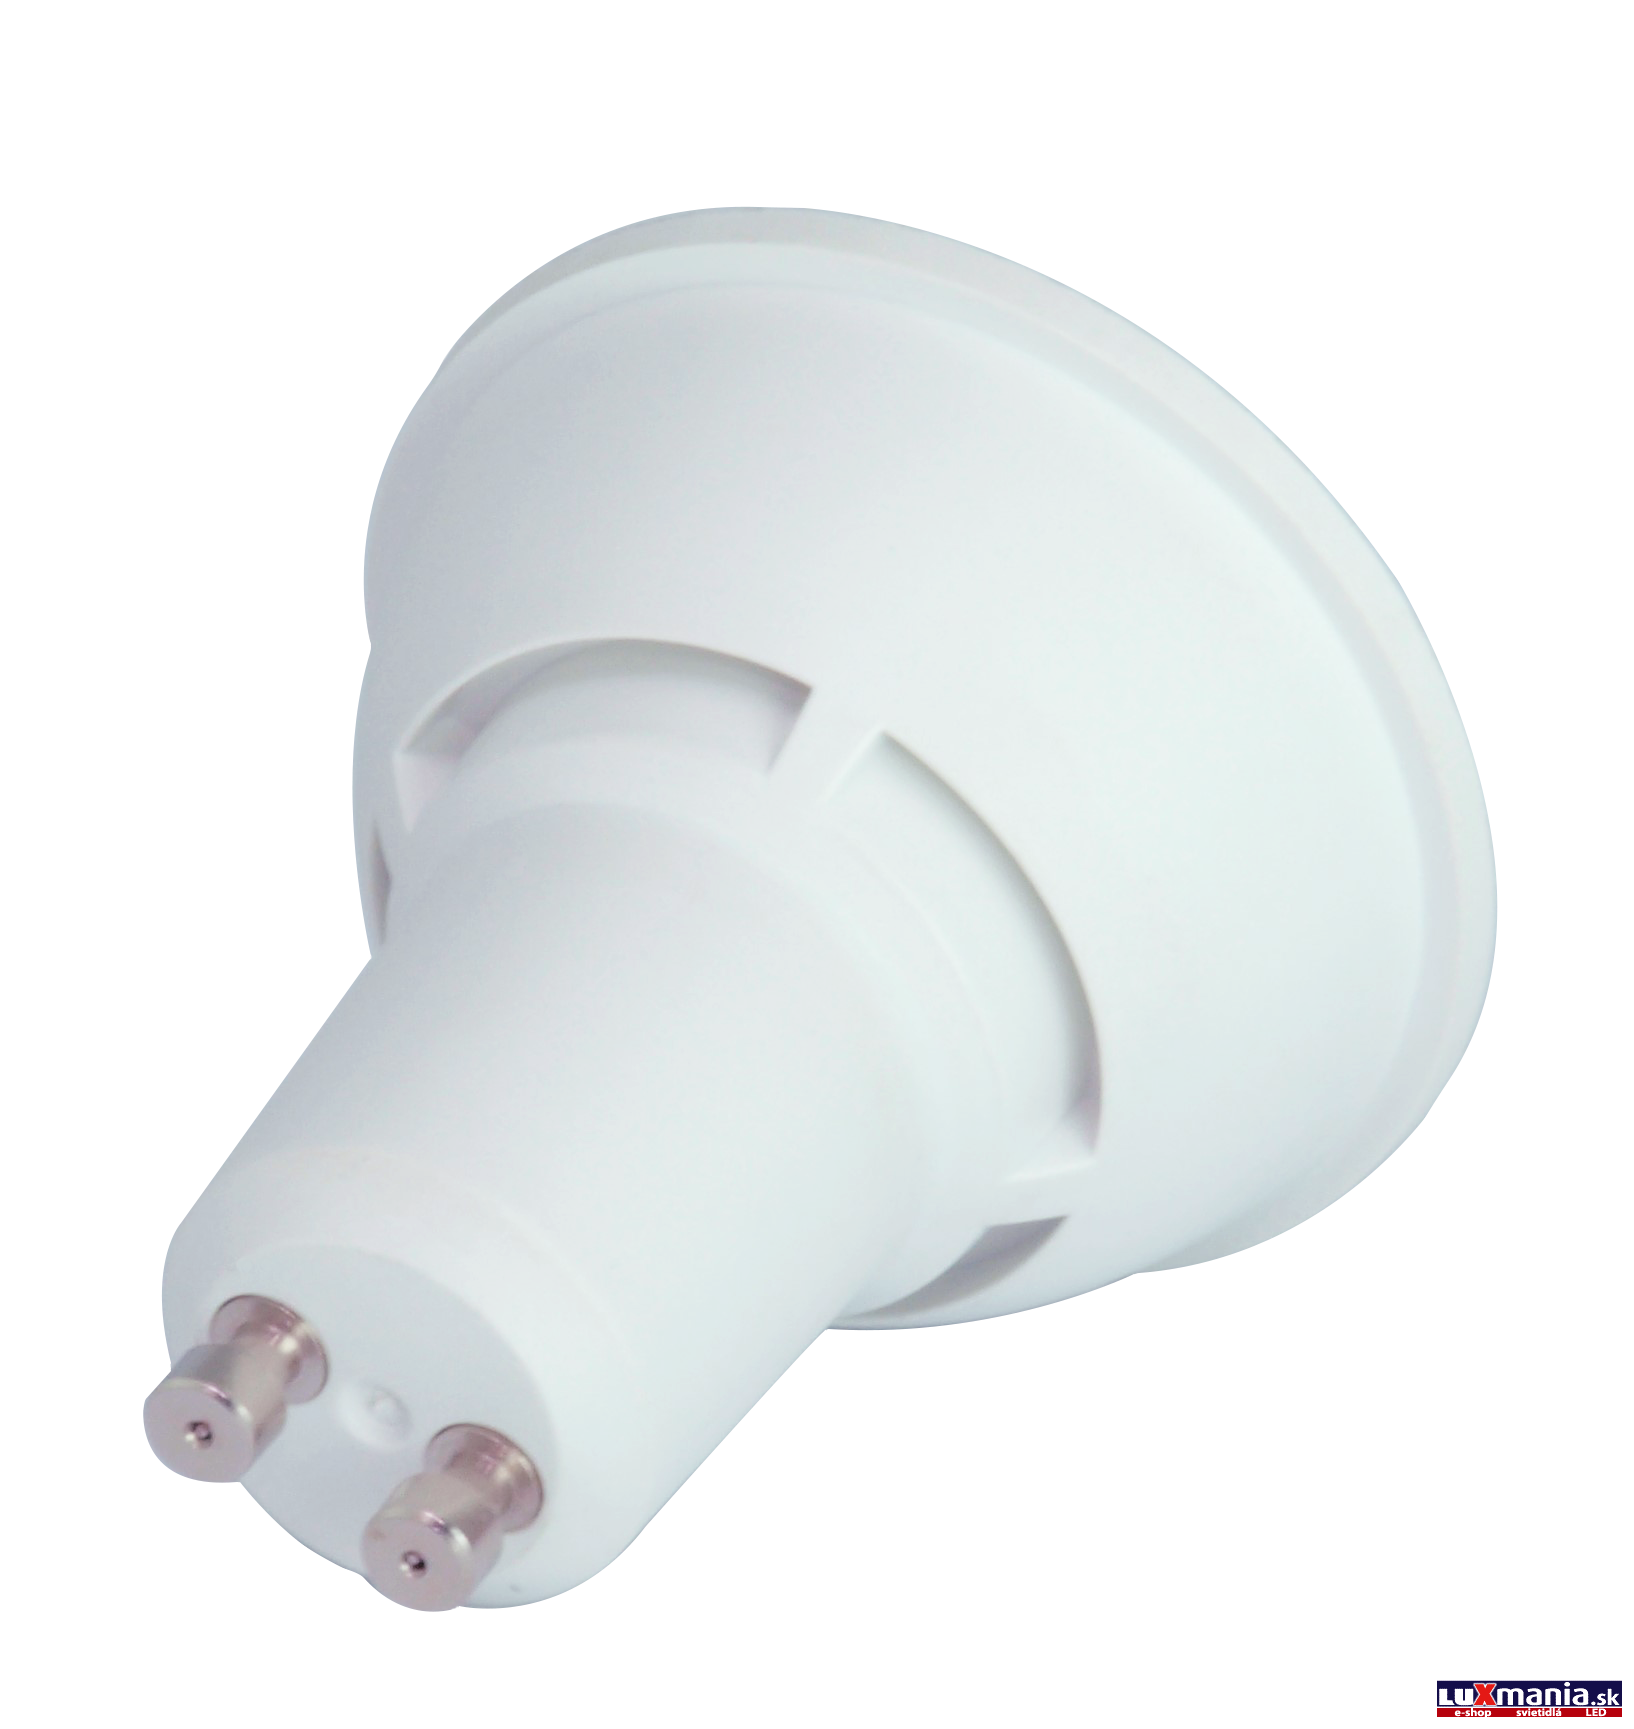 ARGUS LIGHT LED - GU10 - 4,0W - 320lm - WW-teplá